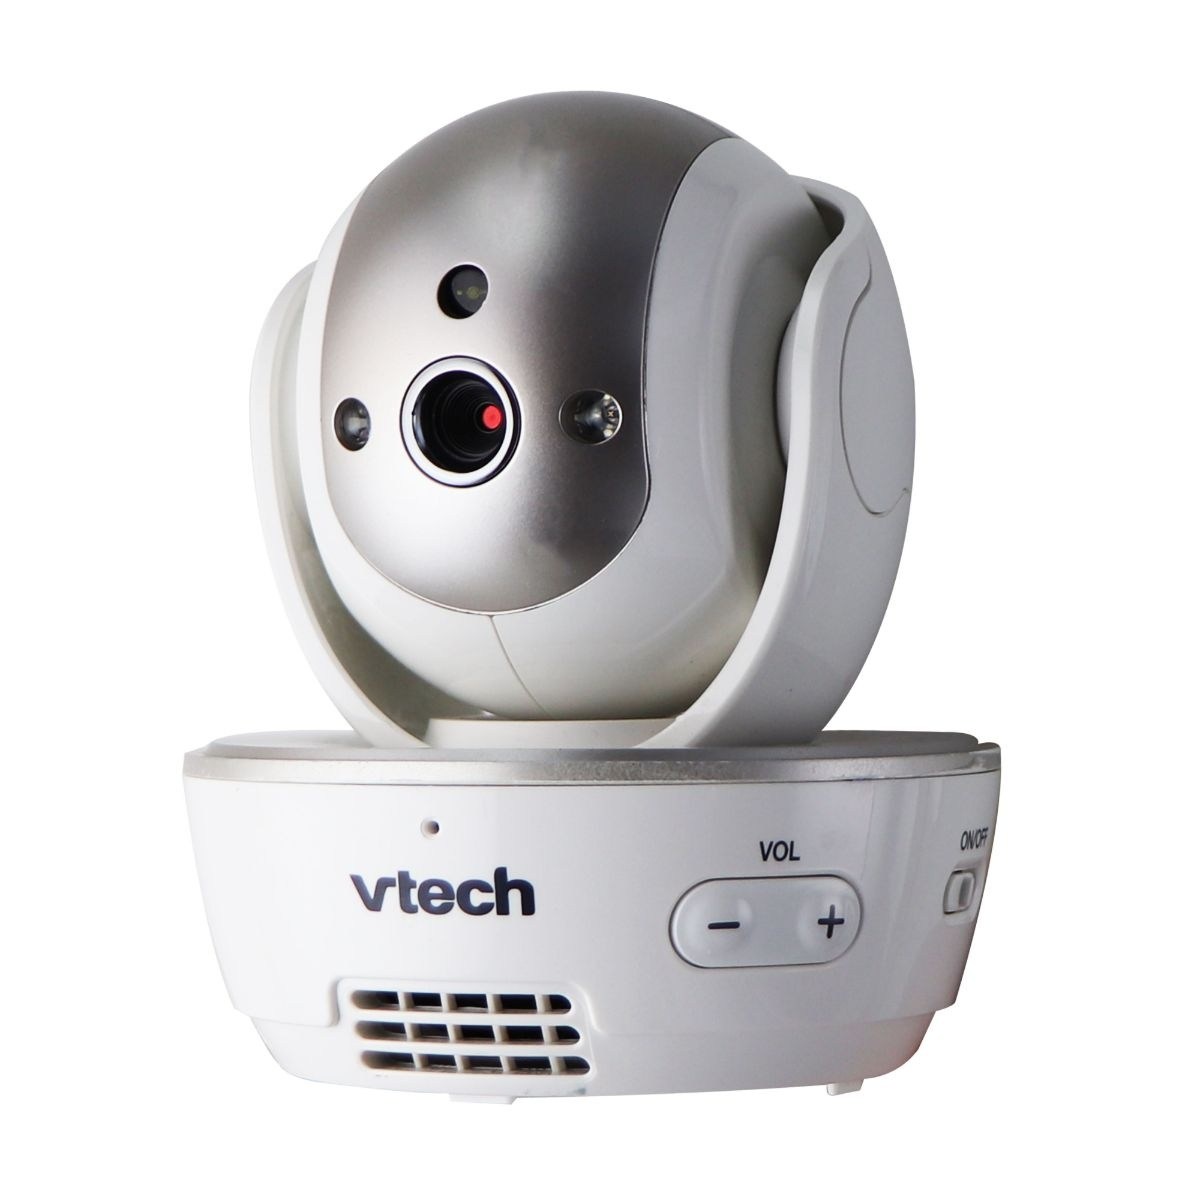 VTech Video Baby Monitor with Automatic Infrared Night Vision (VM343)